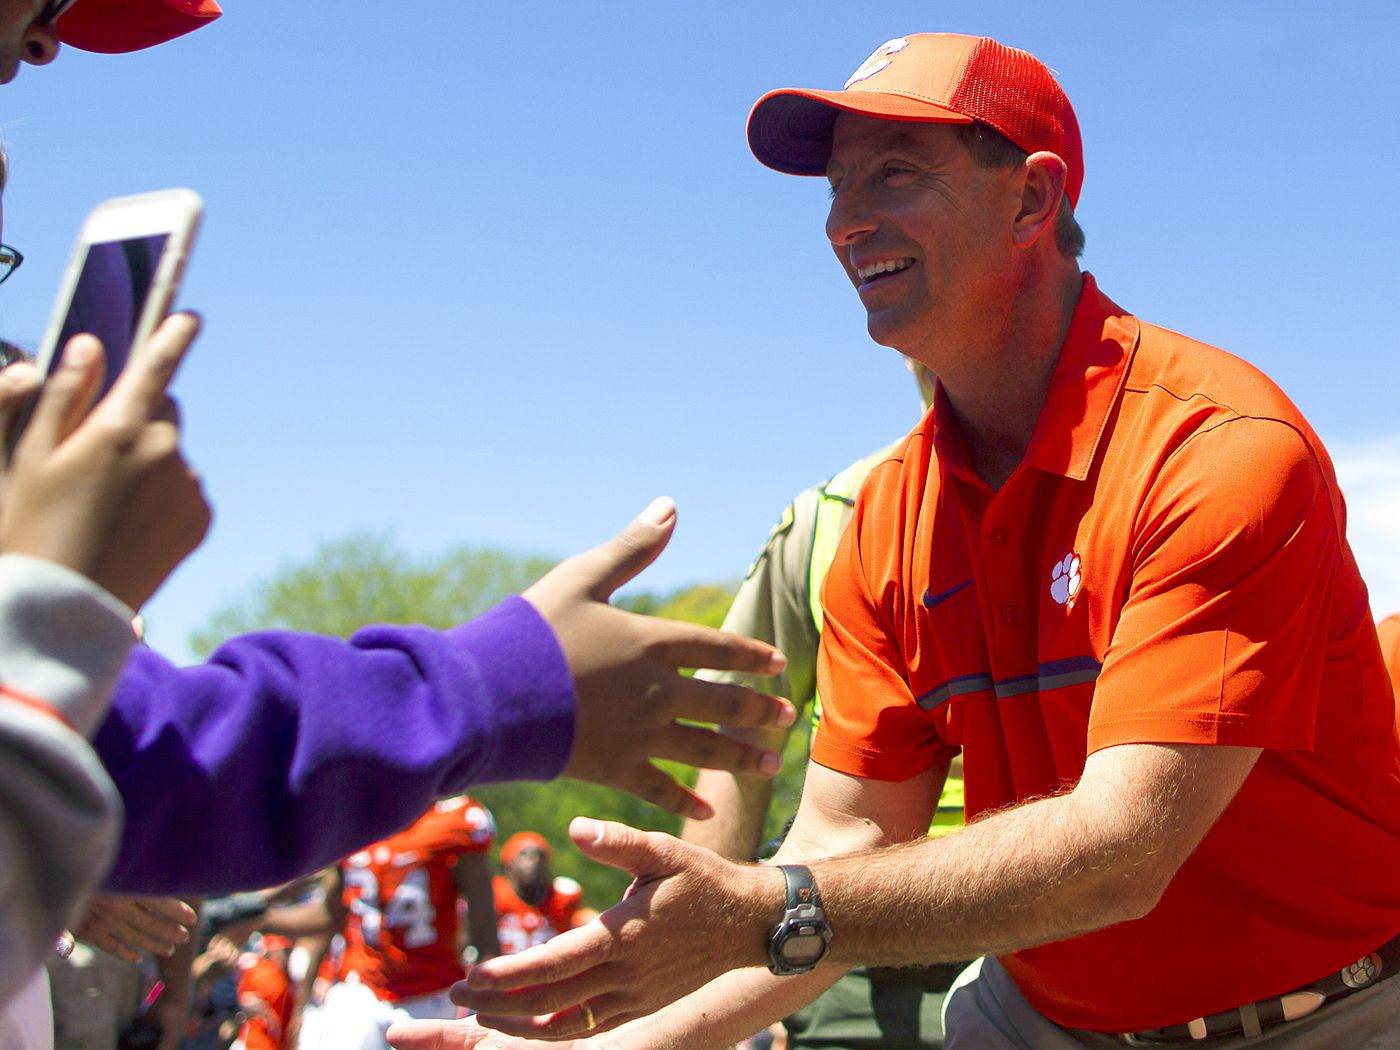 Dabo Swinney S New Contract At Clemson Gets Him Paid Like The Top 4 Coach He Is Sbnation Com